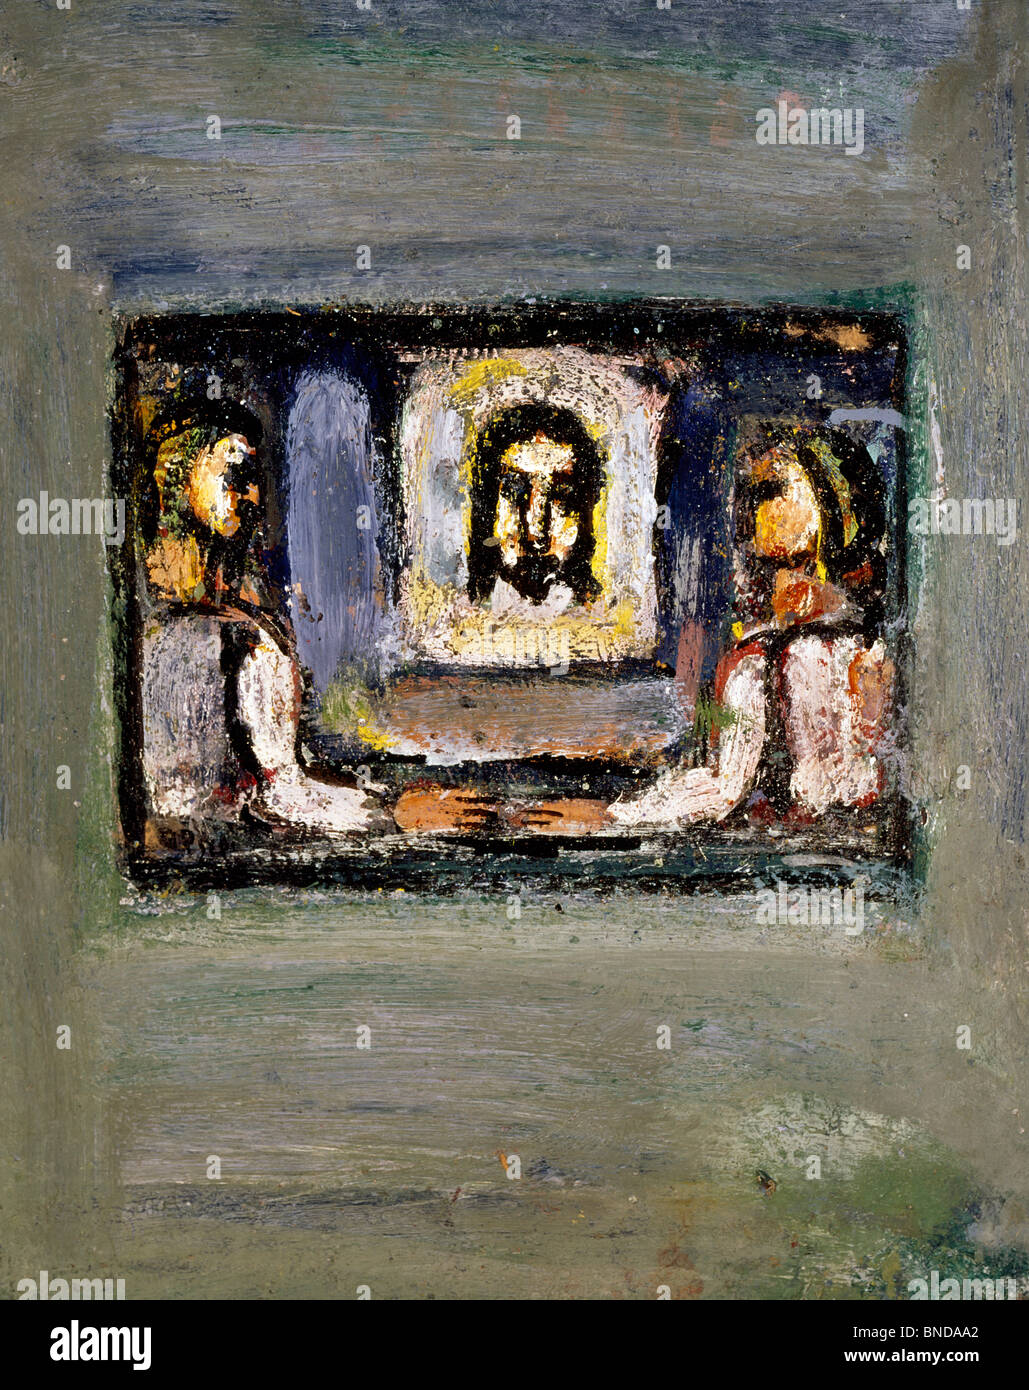 Scene of the Passion: Head of Christ Carried by Two People by Georges Rouault, (1871-1958), USA, Texas, Private - Stock Image